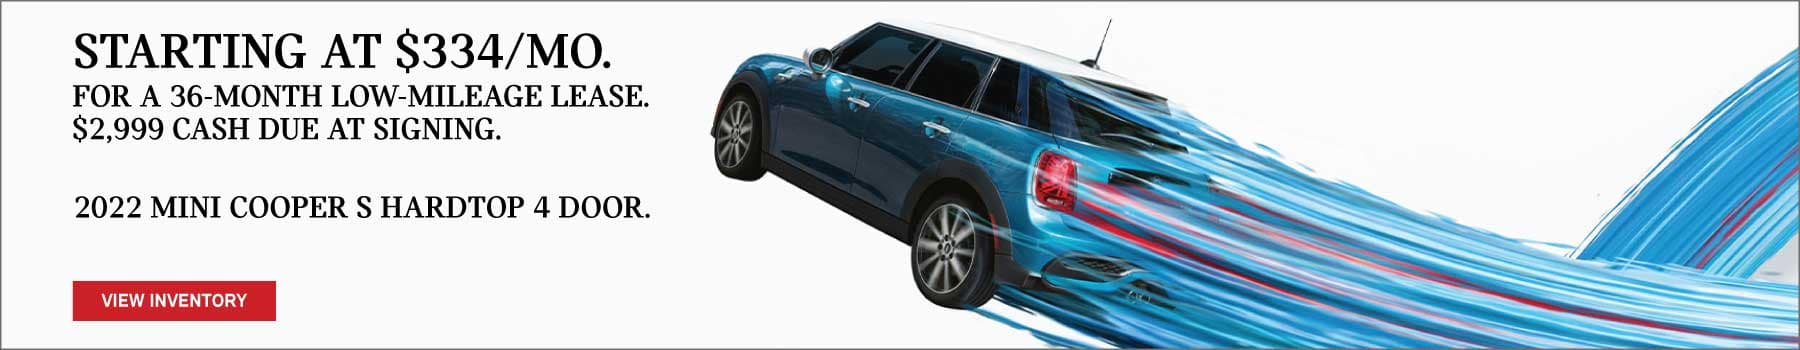 Lease a 2022 MINI Cooper S Hardtop 4 Door starting at $334/ month for a 36-month low-mileage lease. Valid through 08/31/21. Click to view inventory. See dealer for full details. Image shows a blue 2022 MINI Cooper S Hardtop 4 Door floating in blue paint stripes.